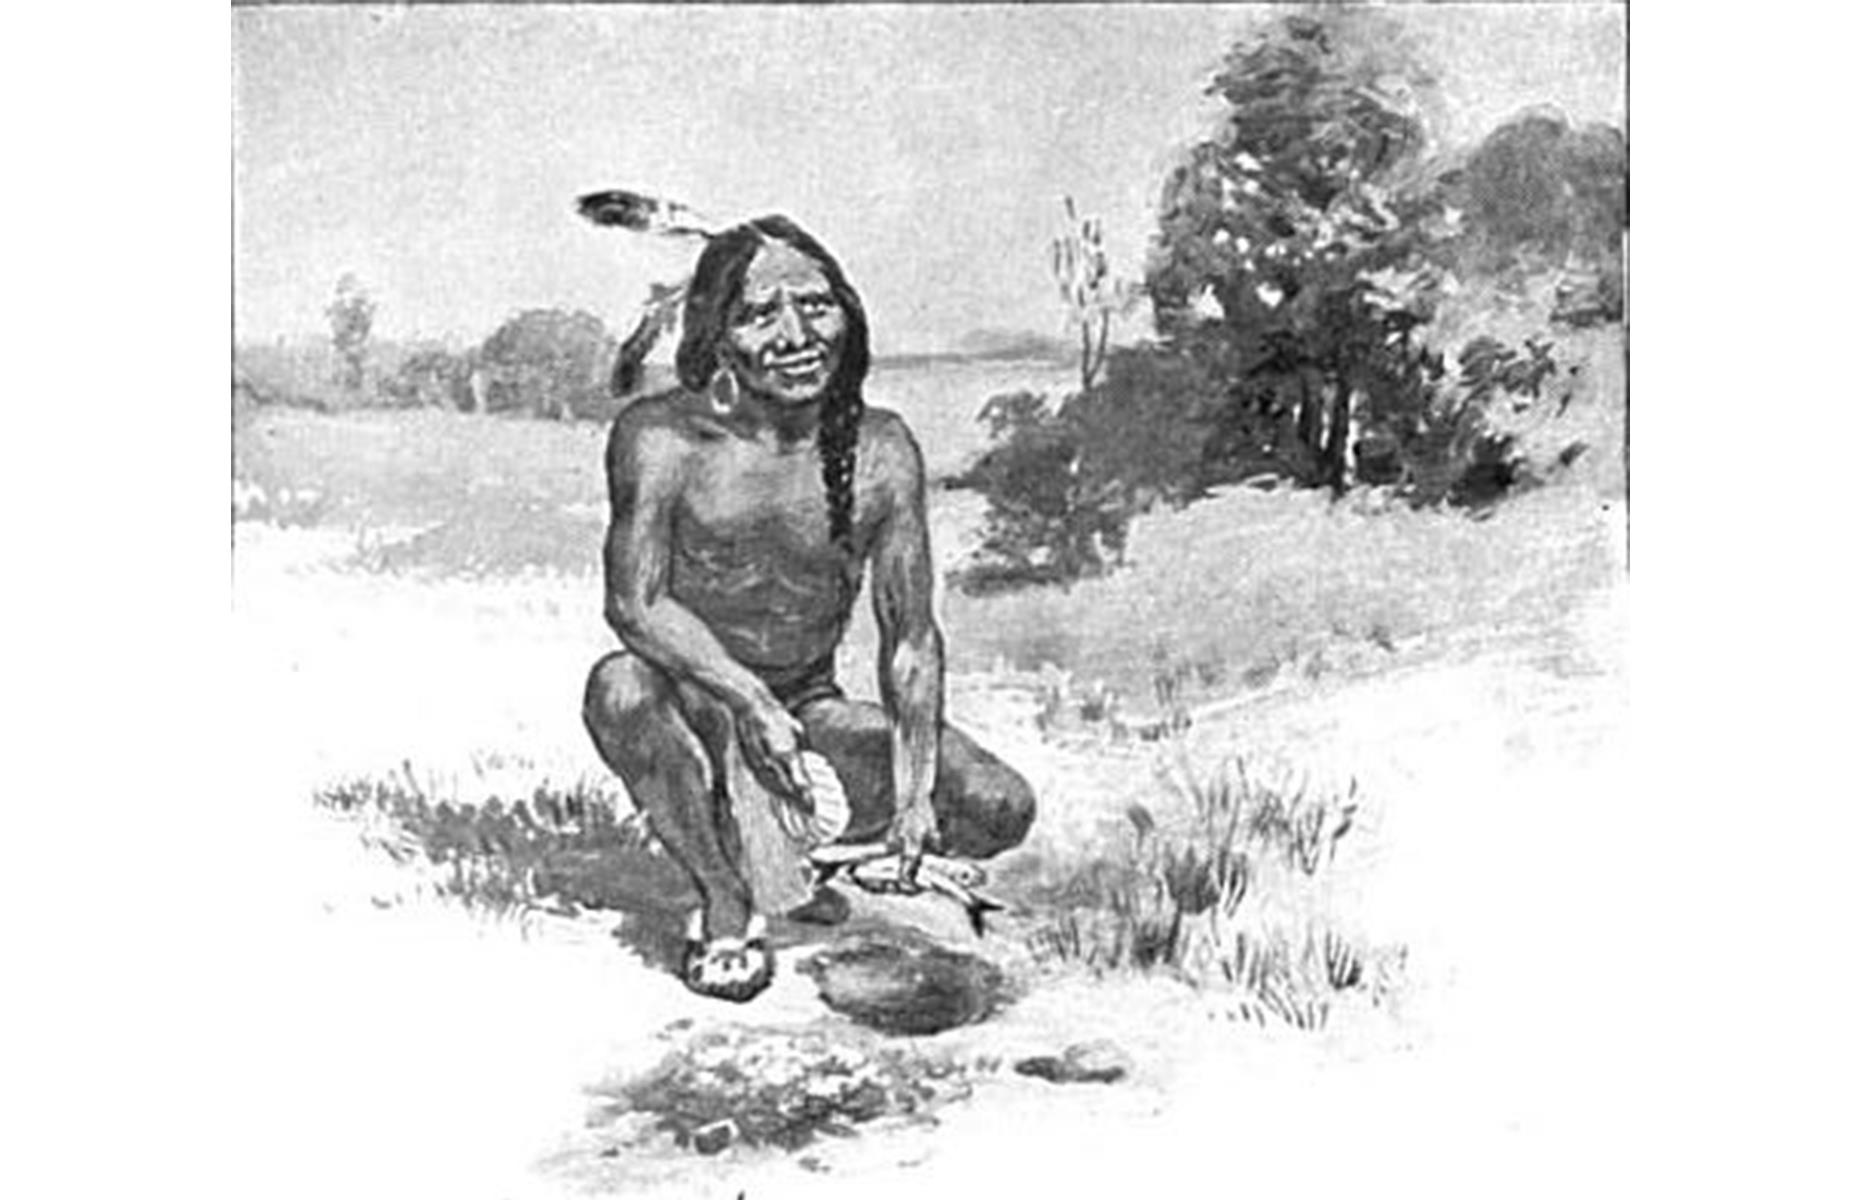 Slide 18 of 23: It's likely that even more Pilgrims would have met their death if it wasn't for the aid offered by the indigenous peoples here. Most notably, Samoset of the Abenaki tribe and Tisquantum (pictured here, also known as Squanto) of the Patuxet tribe, taught the colonists to fish, hunt and grow corn, all of which was vital for their survival. Tragically, Squanto passed away during an expedition on Cape Cod with governor William Bradford.